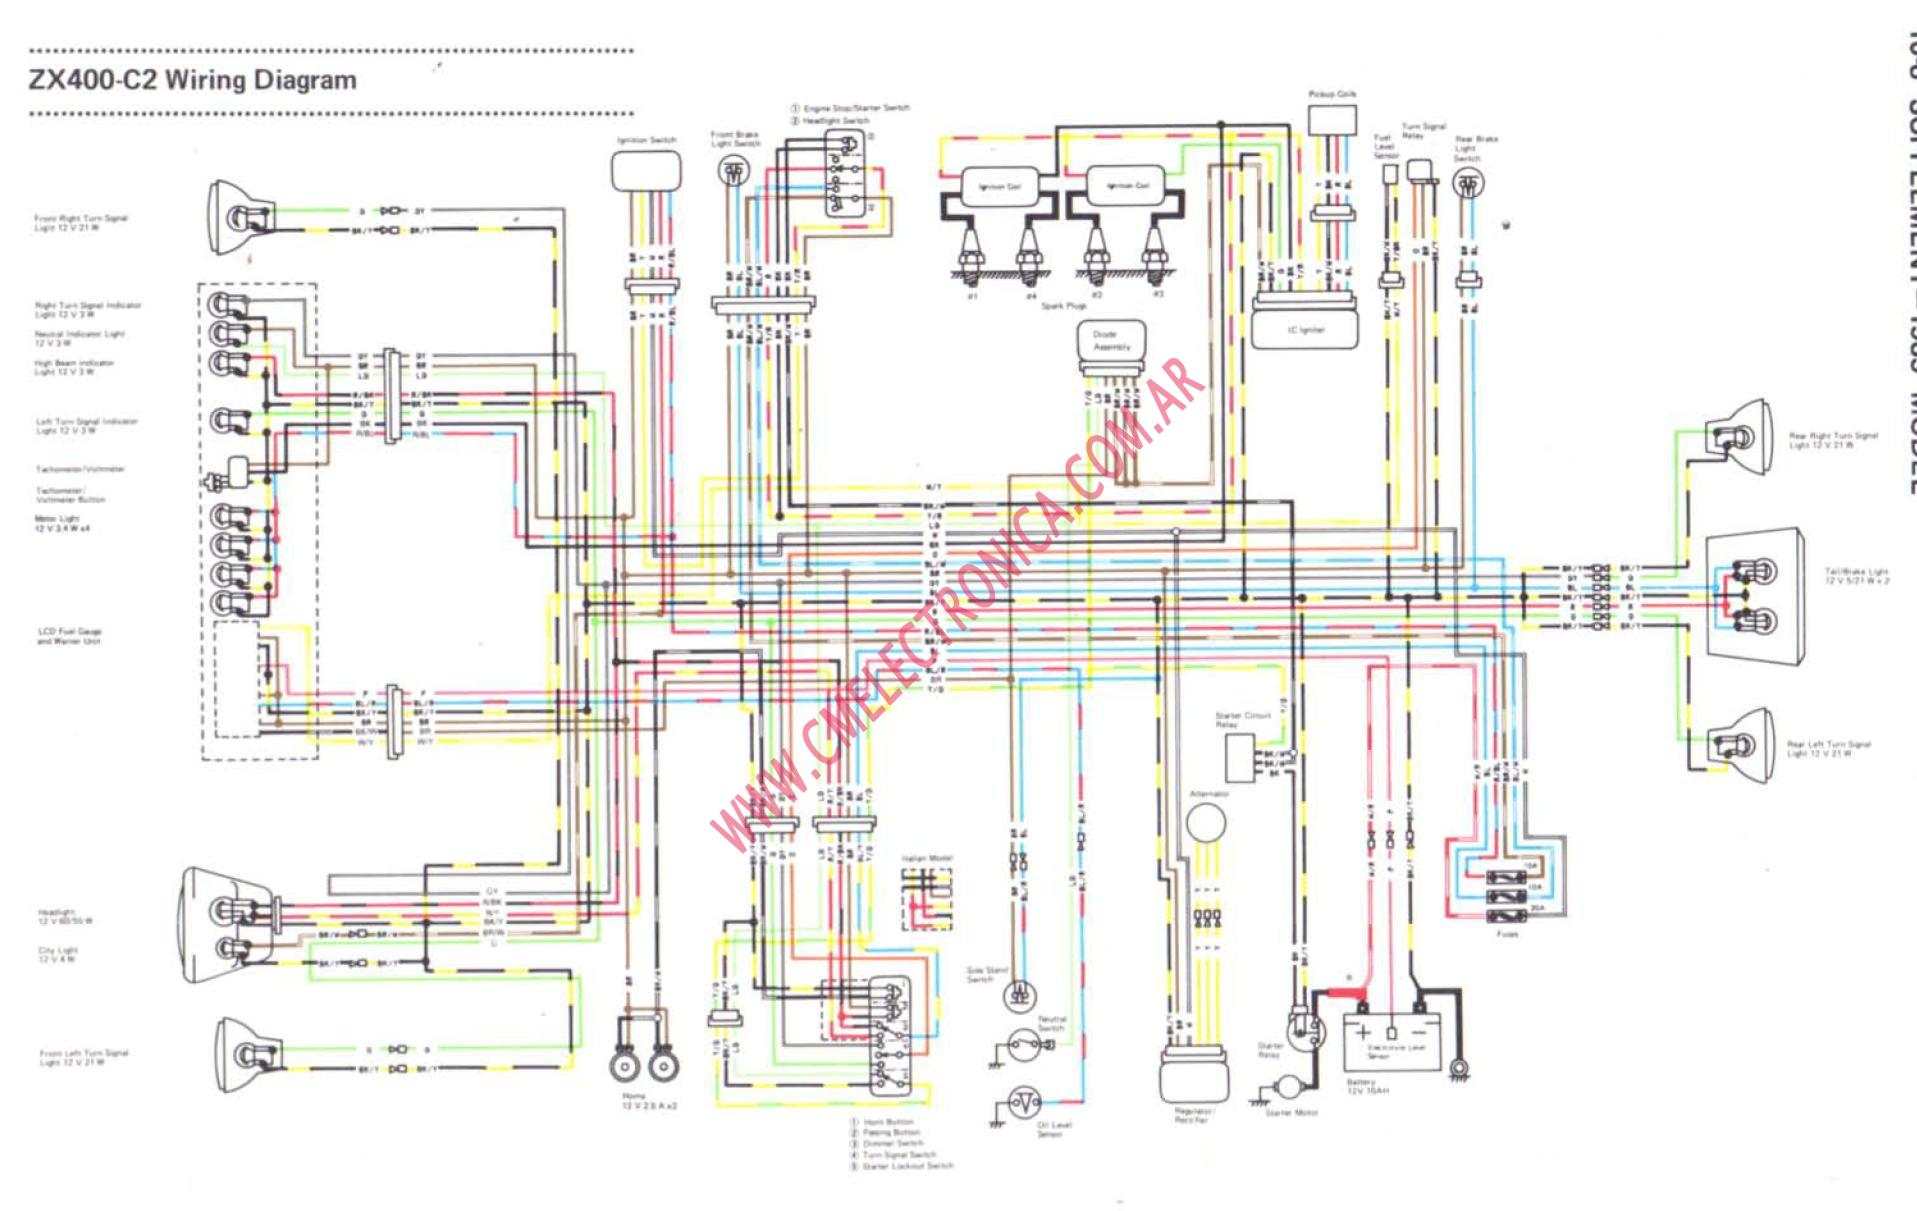 cat5e t568a wiring diagram 2005 chevy trailblazer electrical printable get free image about